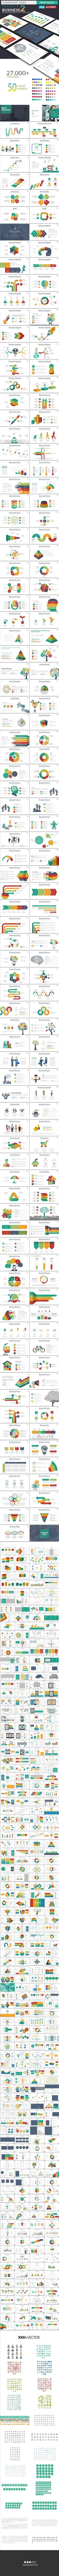 Perfect Business PowerPoint Template 2 - Business PowerPoint Templates